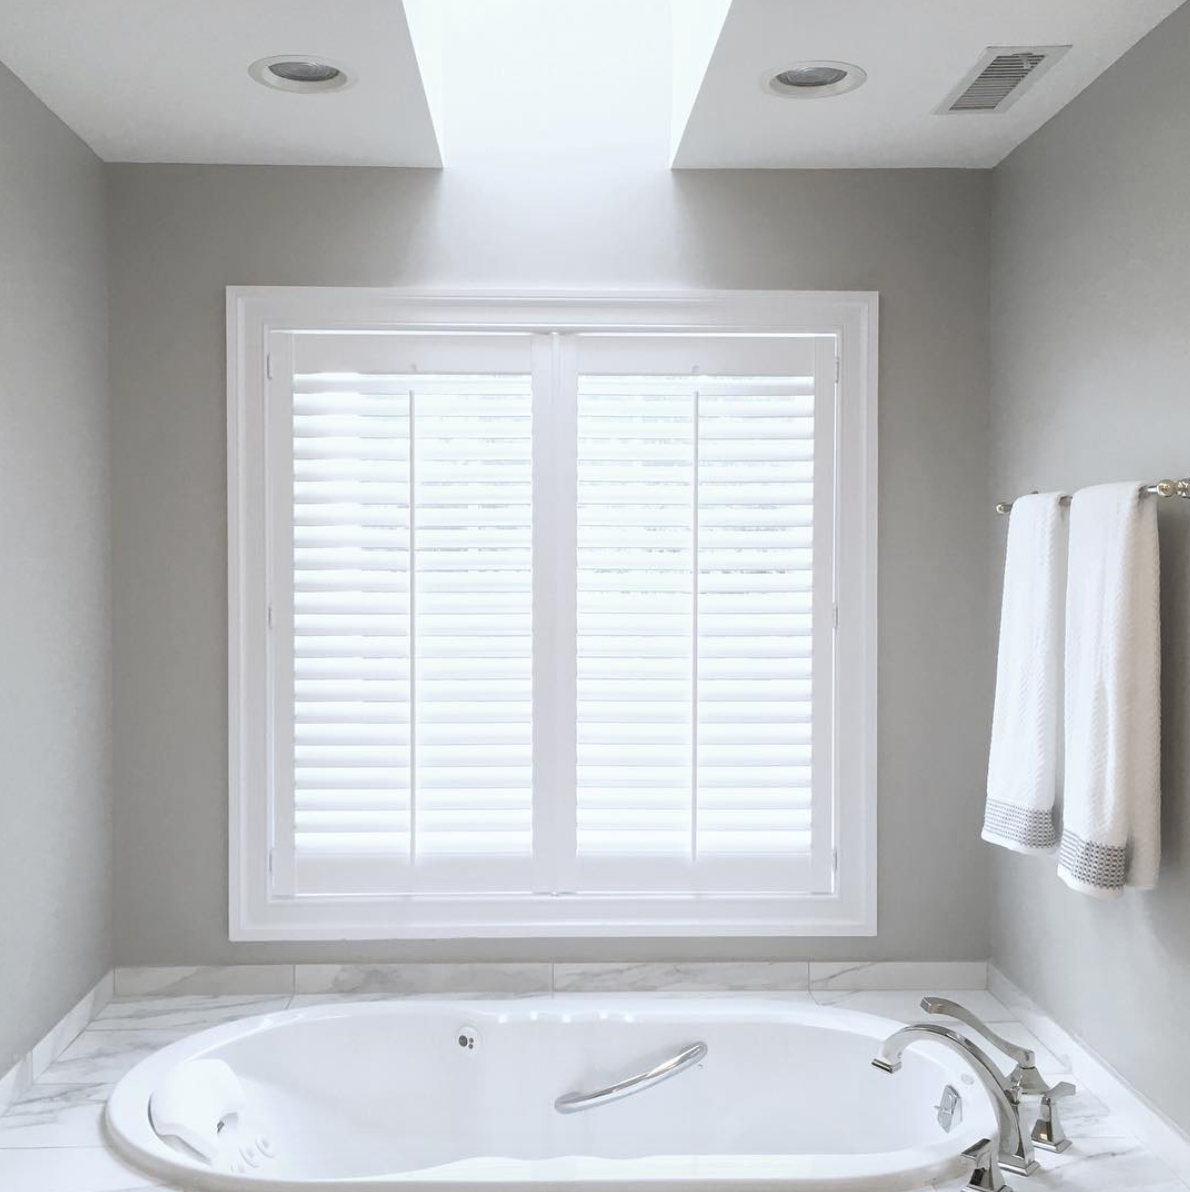 SHUTTERS - Plantation Shutters have gained popularity recently. Bringing warmth and modern appeal to every home, plantation shutters are sure to be a conversation piece in any space.